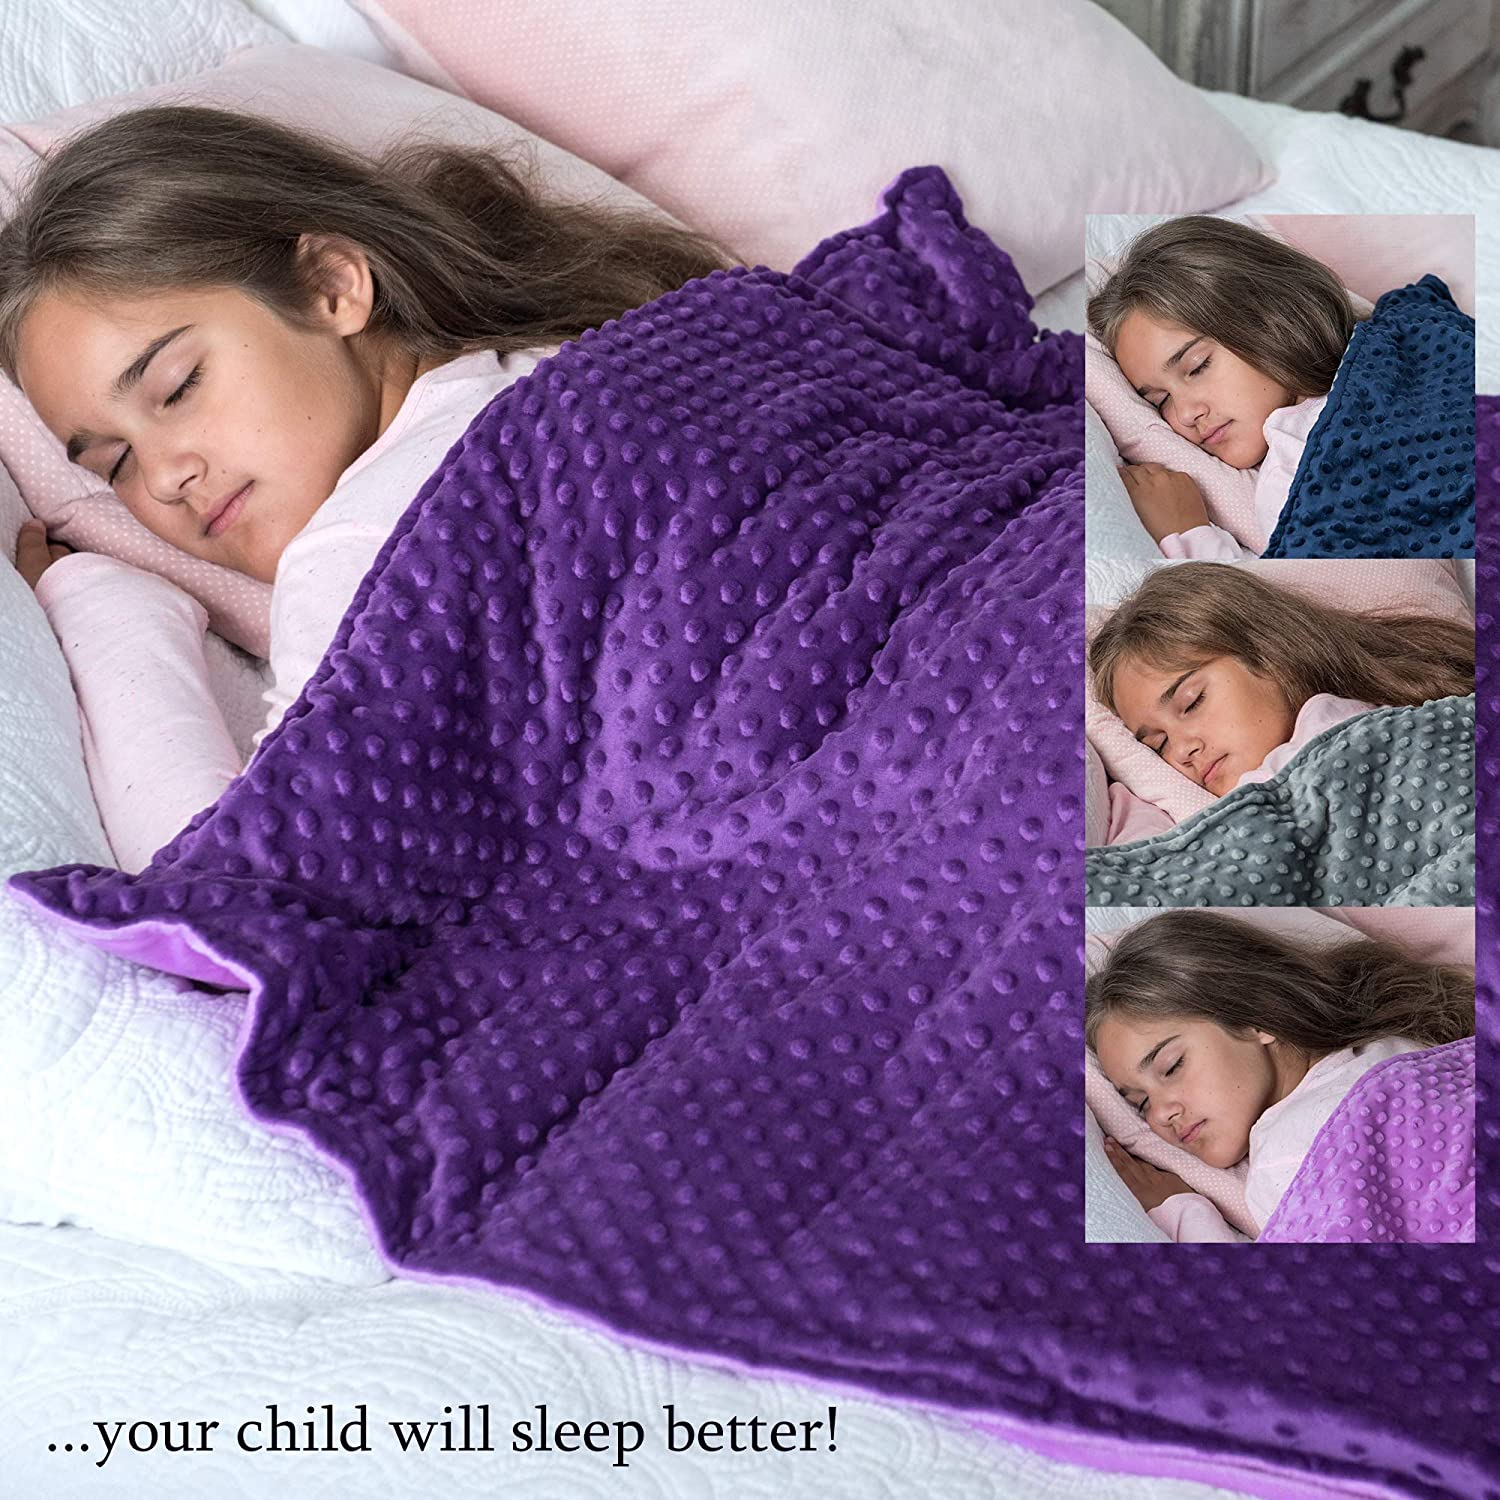 5lb Weighted Blanket with Dot Minky Cover for Kids 40-60lb Individual.Help Children with Sleep Issues Anxiety Stress Insomnia Inner Light Gray//Cover Gray /& Light Gray, 36x48 5 lbs